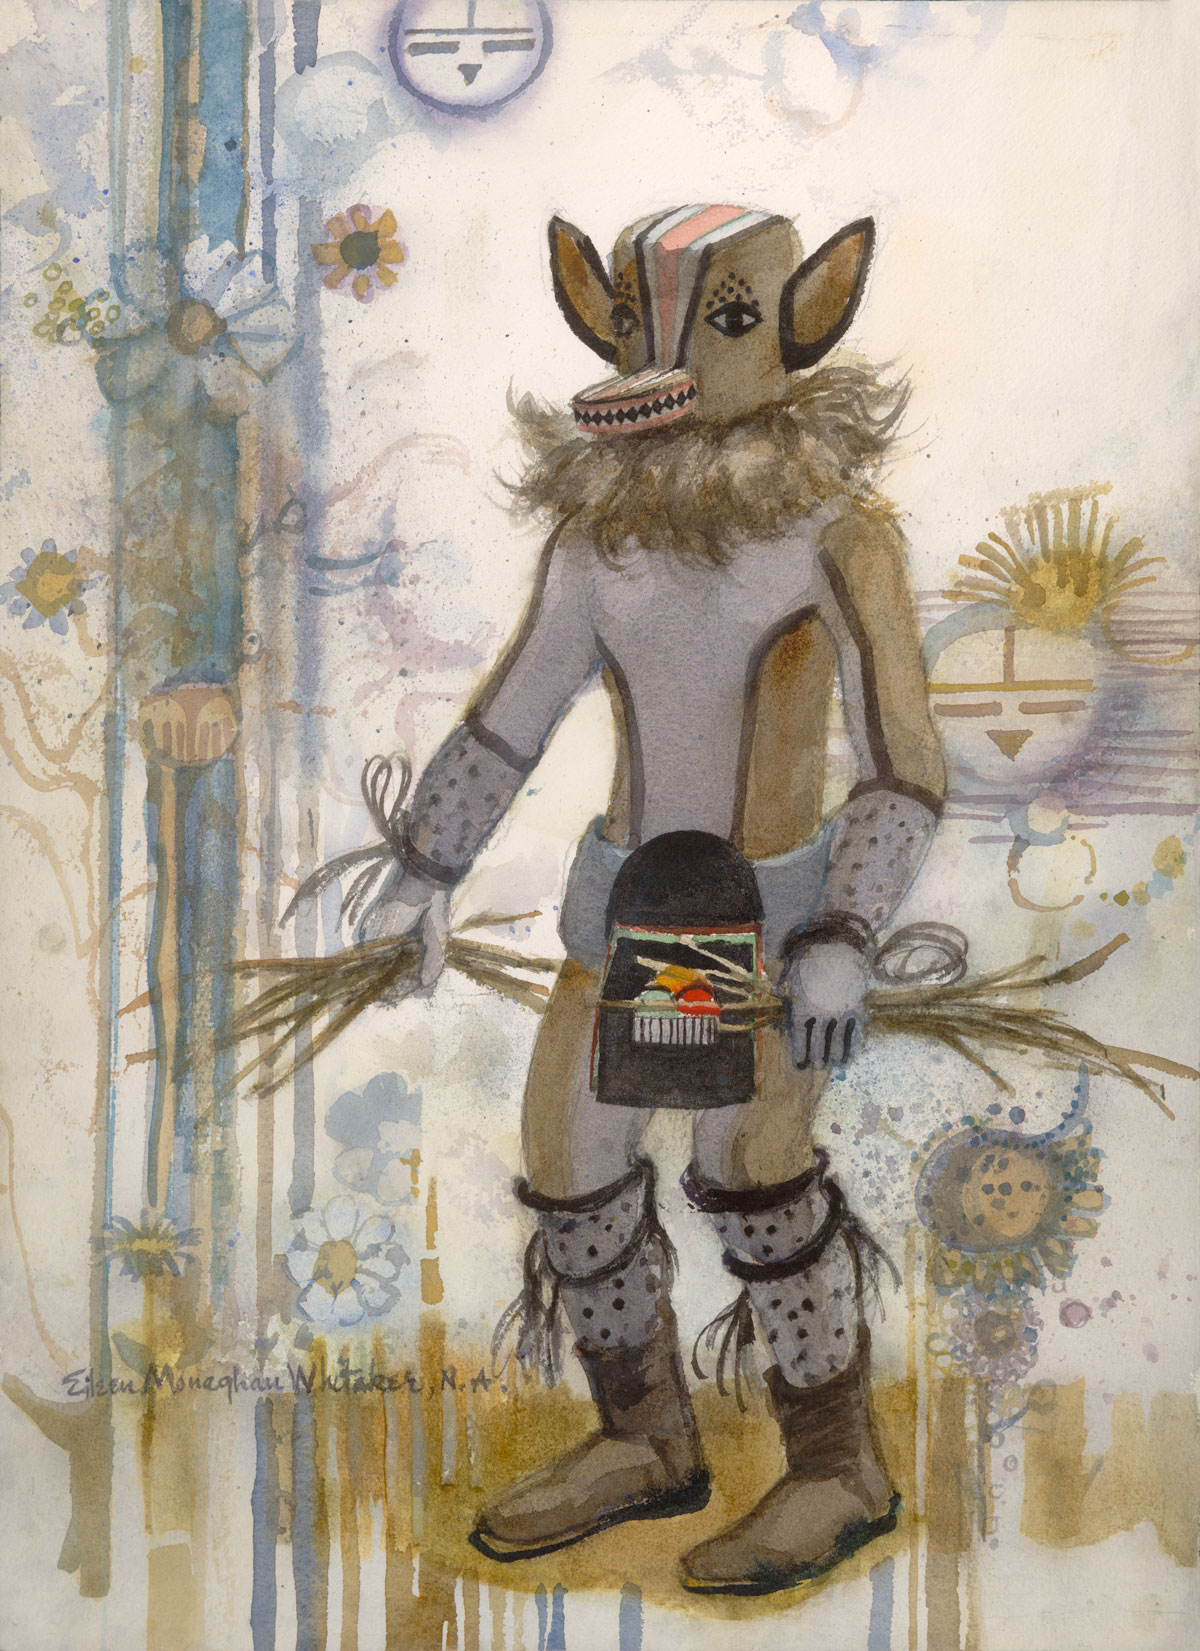 """Kachina Chipmunk"" 1983 © Eileen Monaghan Whitaker 22x16 inches Watercolor"